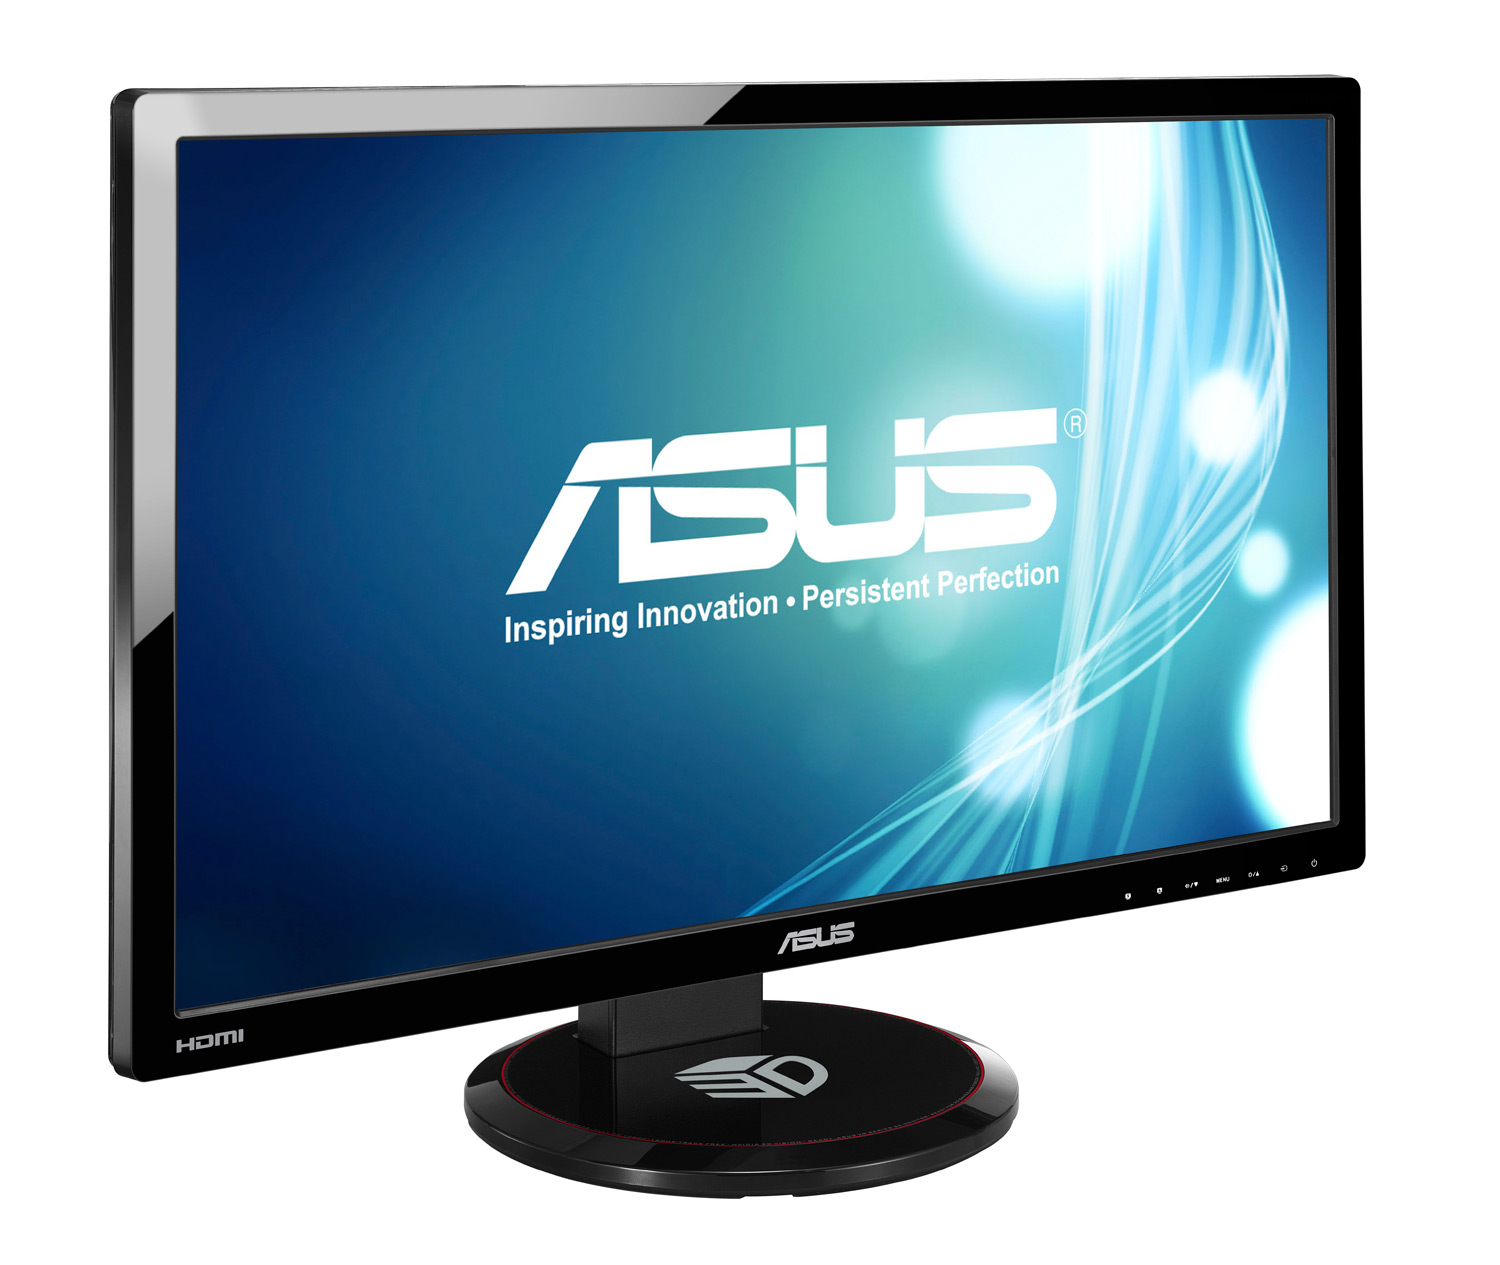 When 120Hz Is Not Fast Enough: ASUS 144Hz VG278HE Gaming 3D